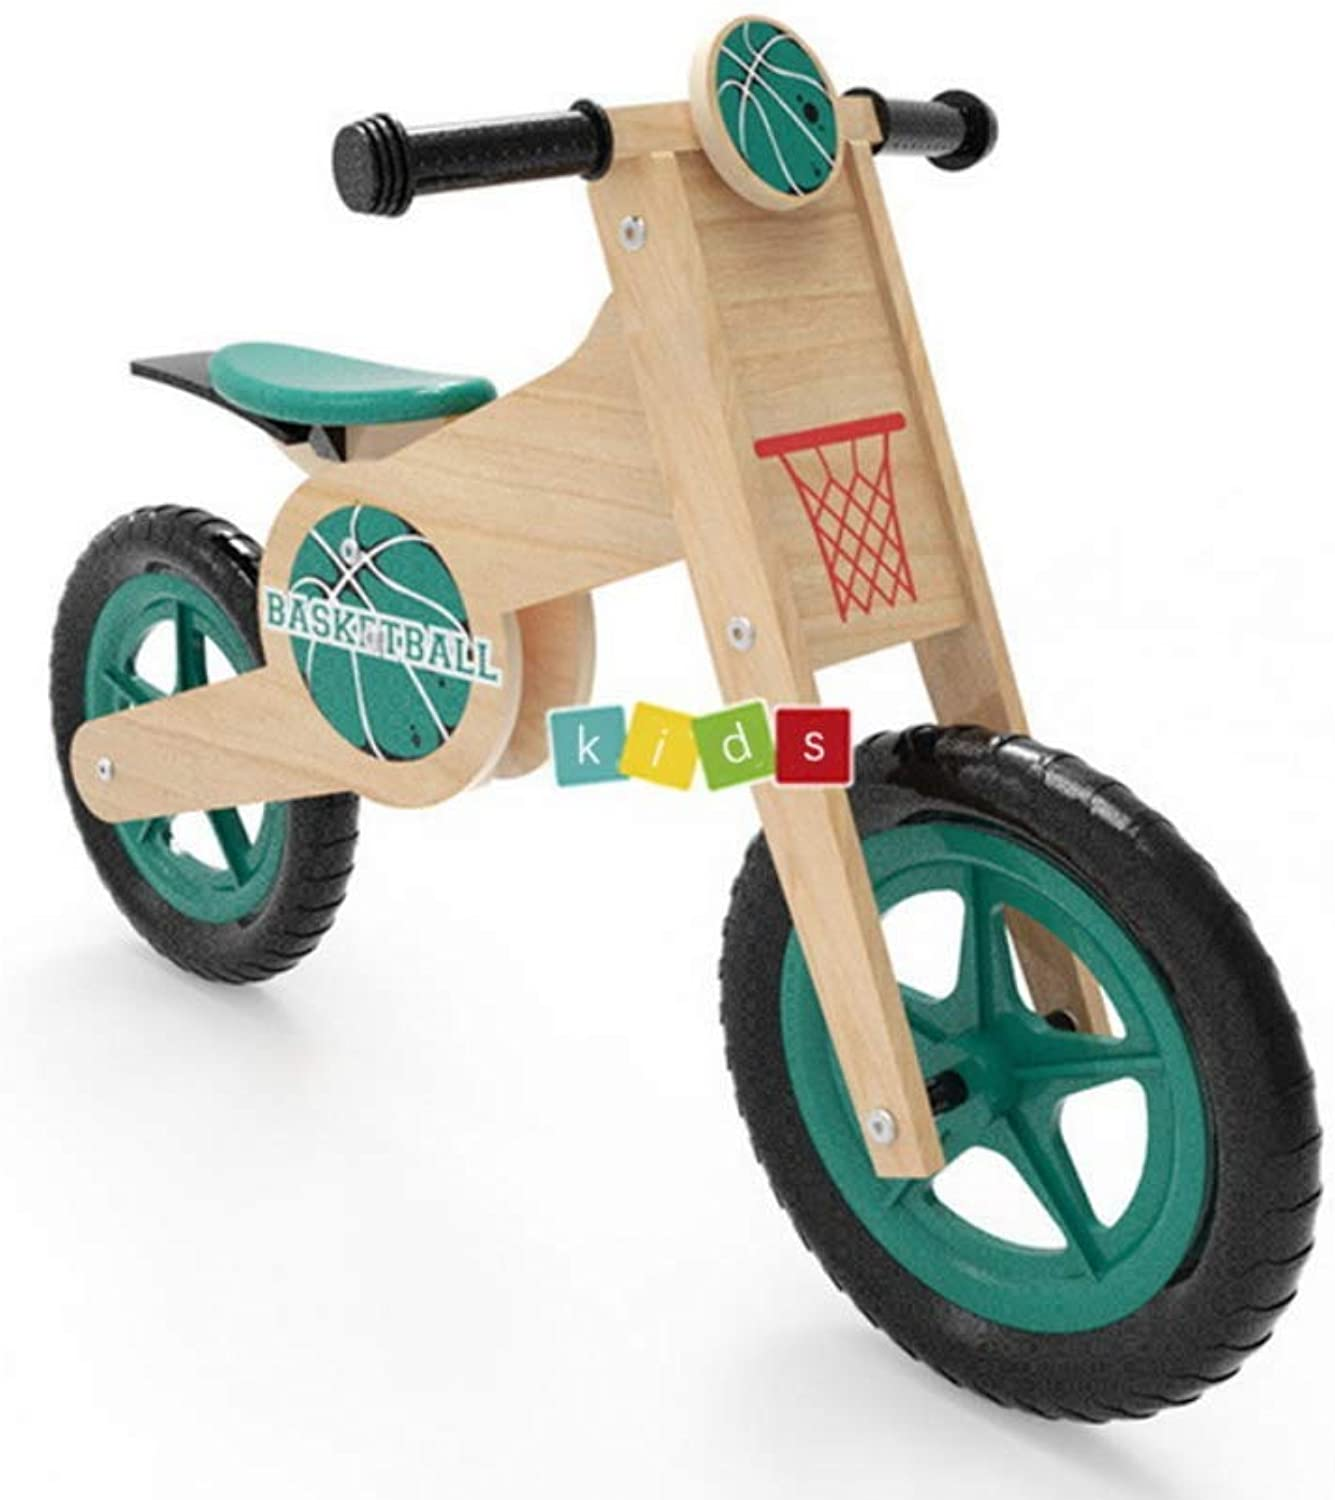 Balance Bikes for 4 Year Olds Wooden,Lightweight Training Cycle with 2 Wheels for Toddler Boys Girls First Birthday Gift